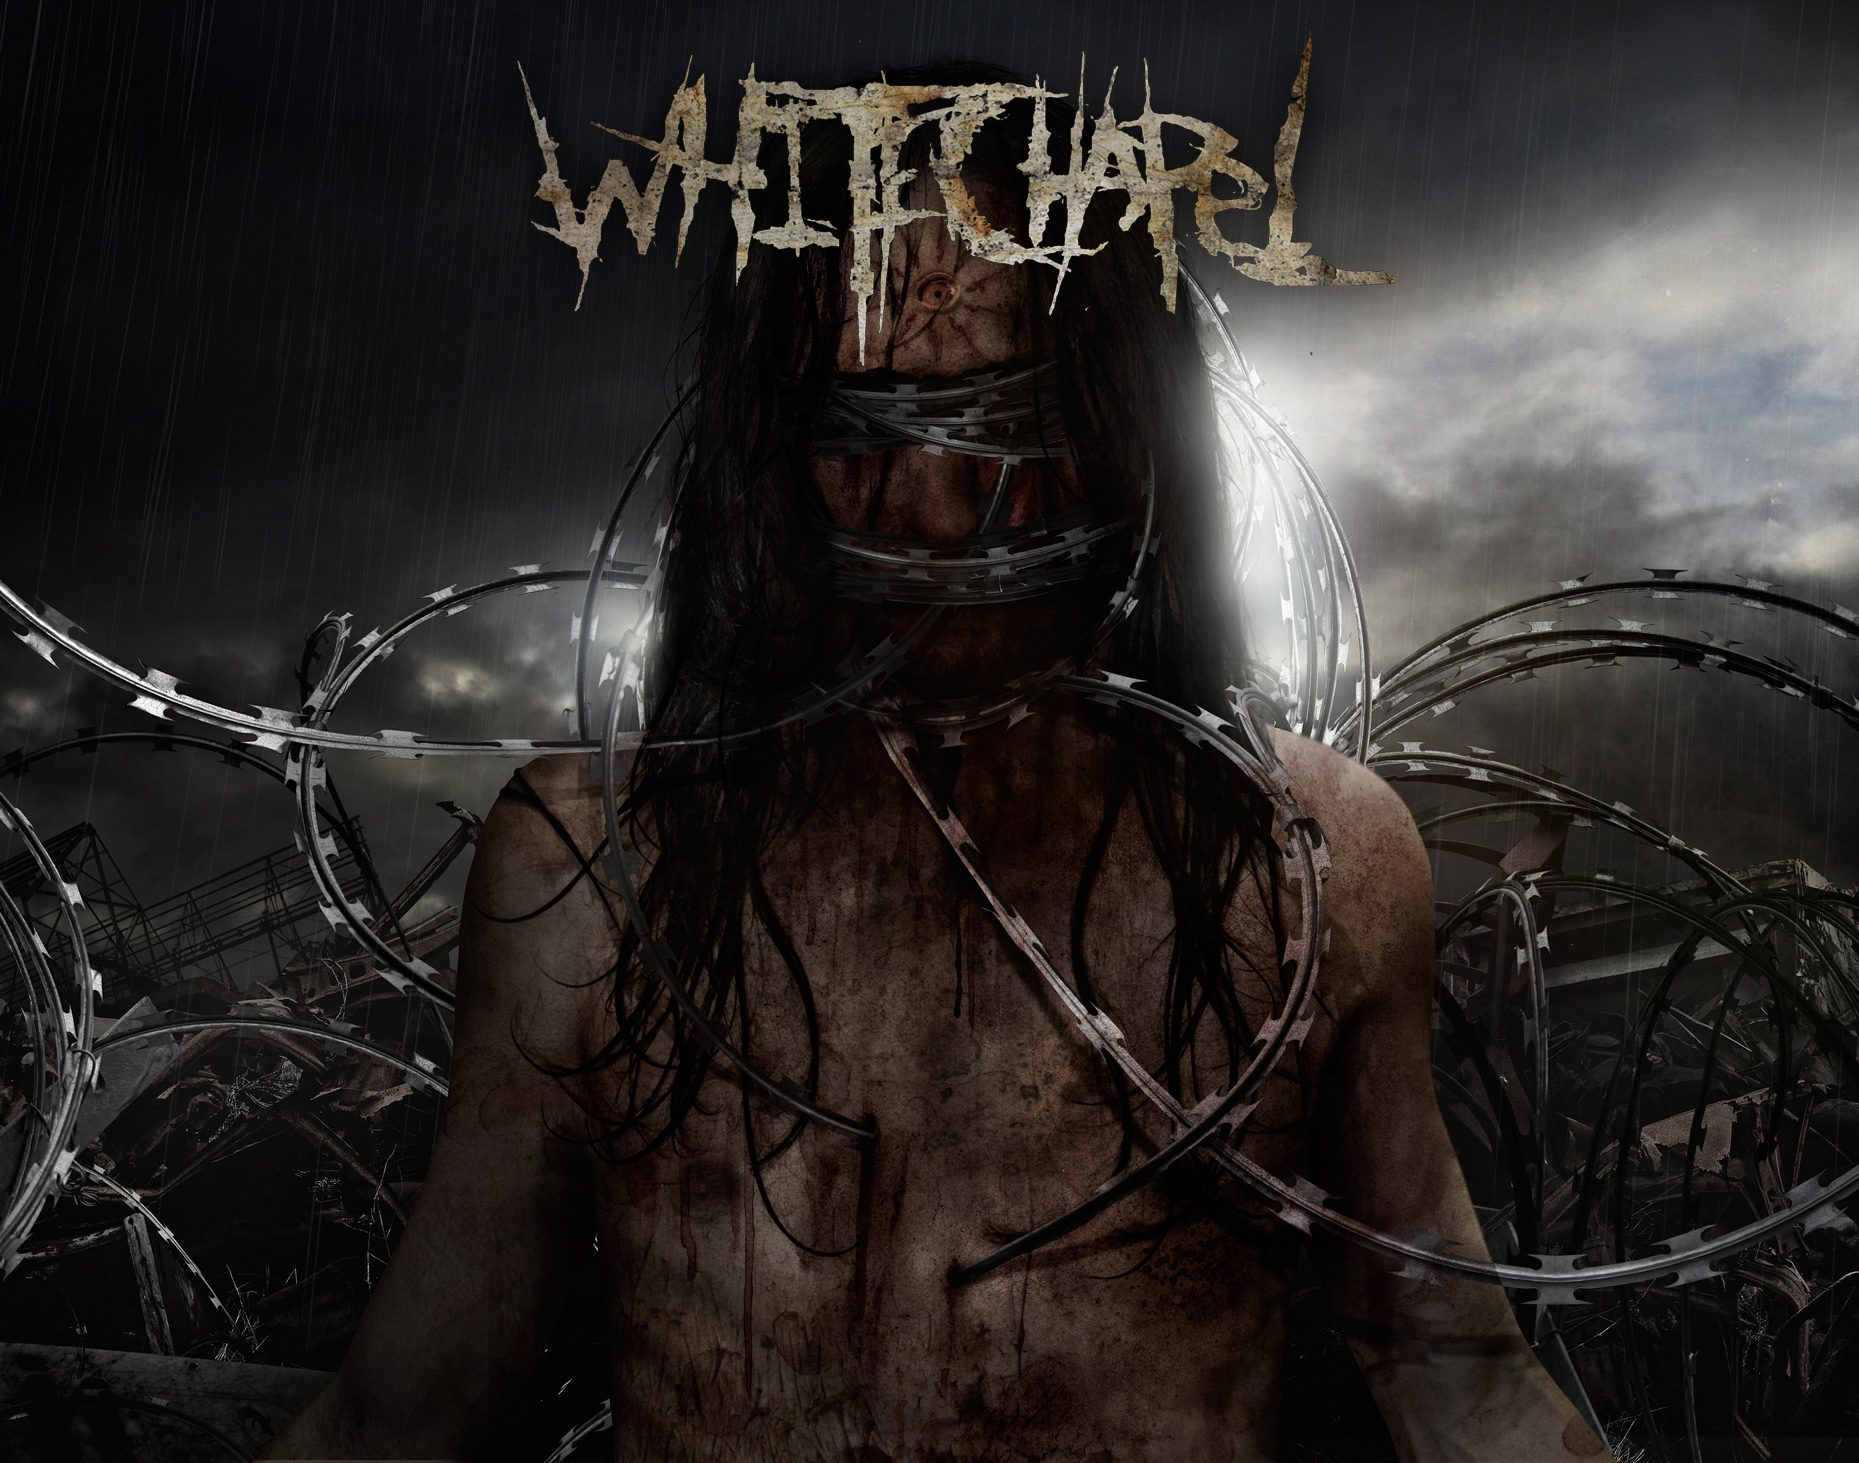 10 WhiteChapel HD Wallpapers